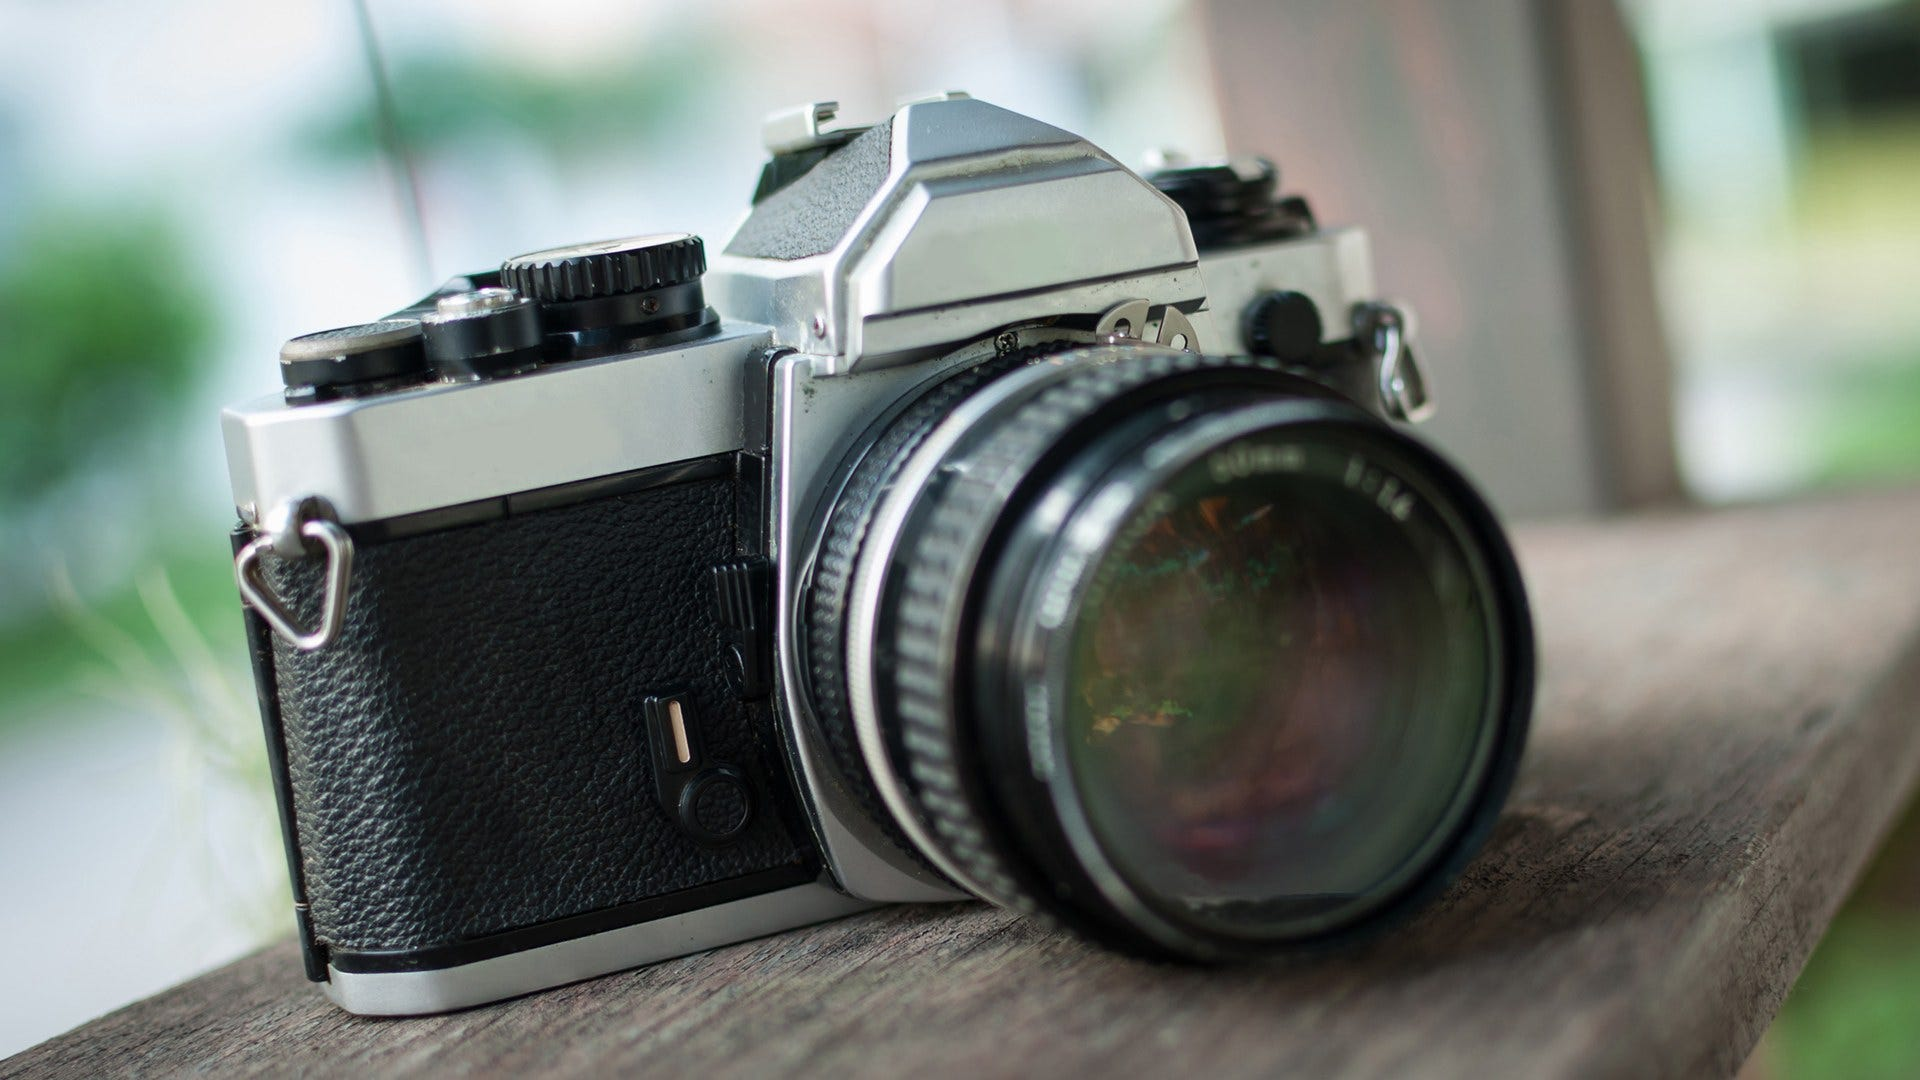 5 Best Film Cameras That You Can Purchase Brand New